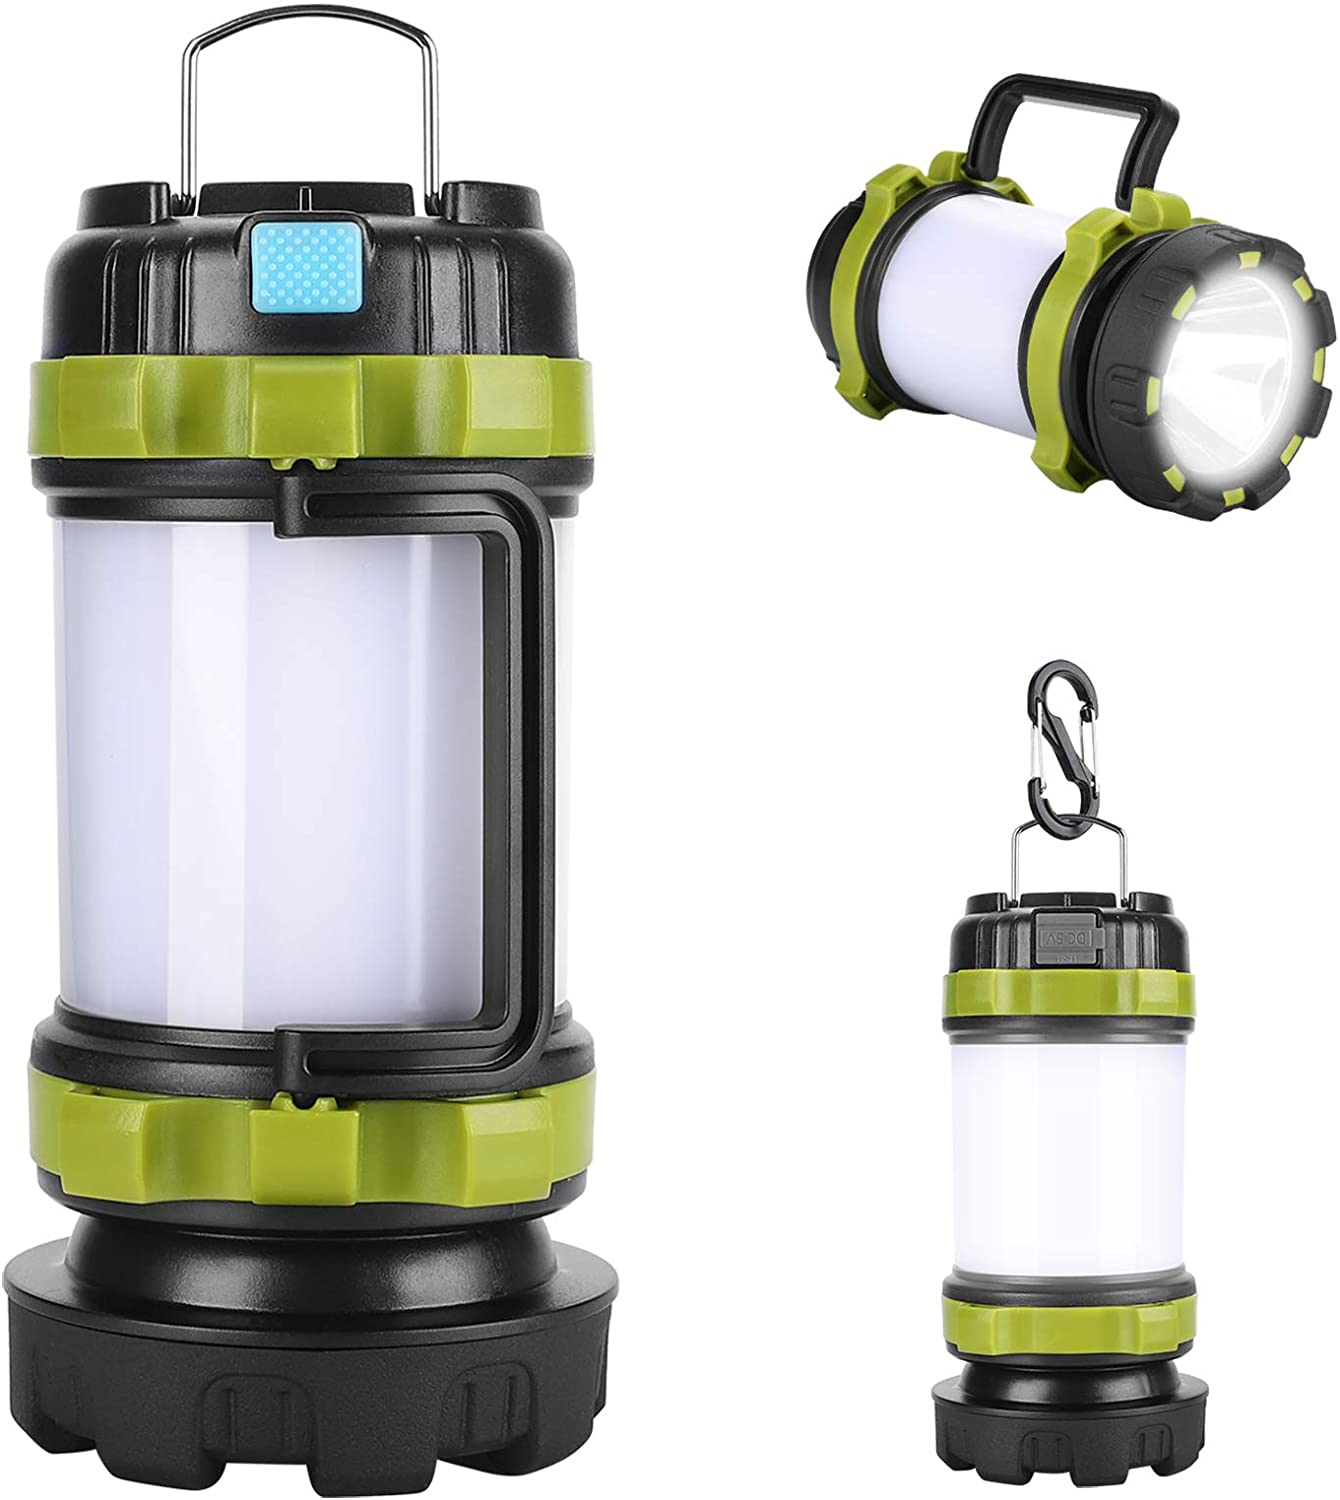 AlpsWolf Camping Lantern Rechargeable Camping Flashlight 4000mAh Power Bank,6 Modes, IPX4 Waterproof, Led Lantern Camping, Hiking, Outdoor Recreations, USB Charging Cable Included: Sports & Outdoors